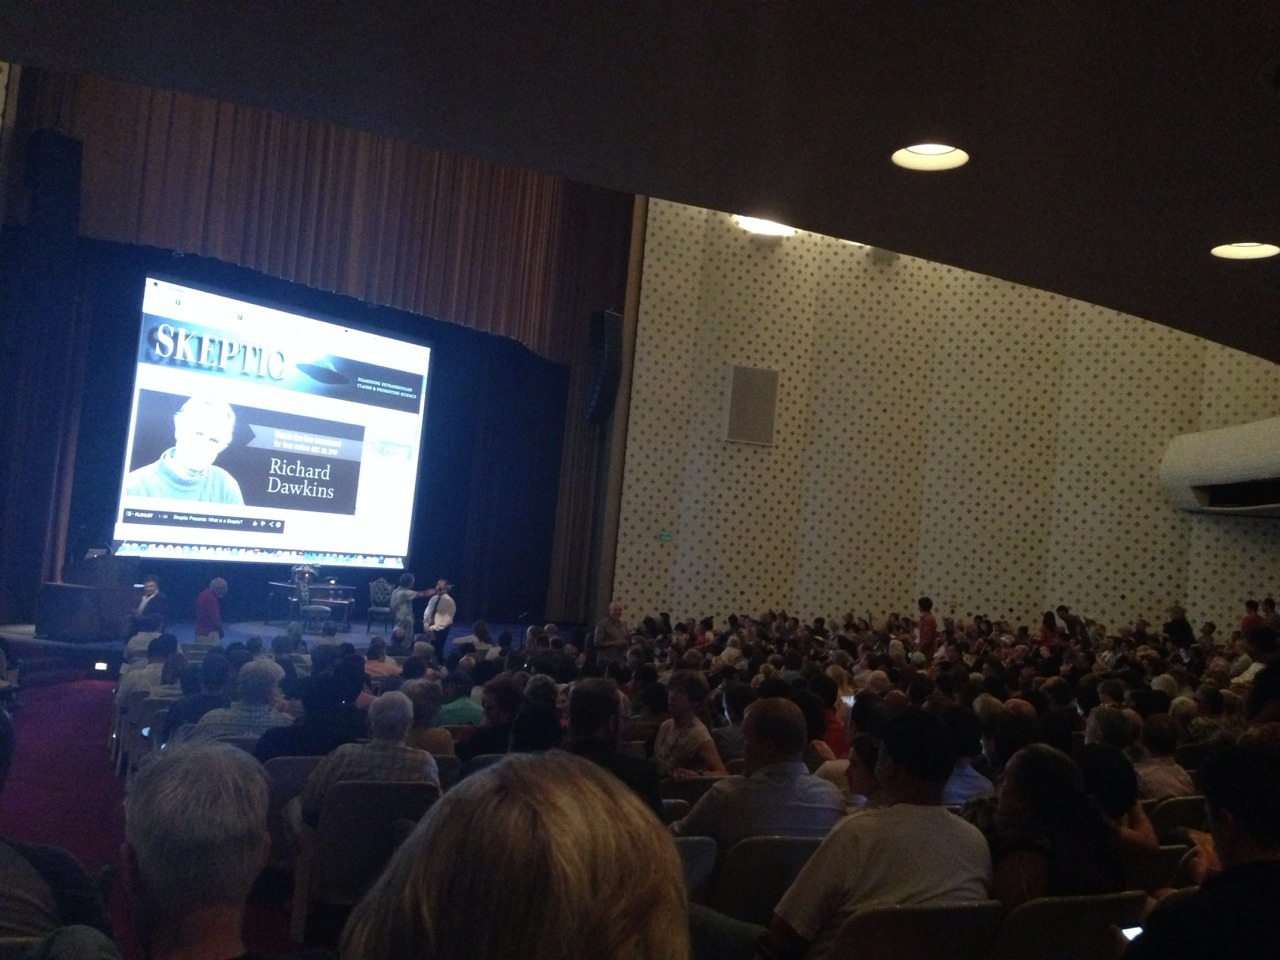 Richard Dawkins at Caltech in Pasadena. Living in California is lovely.